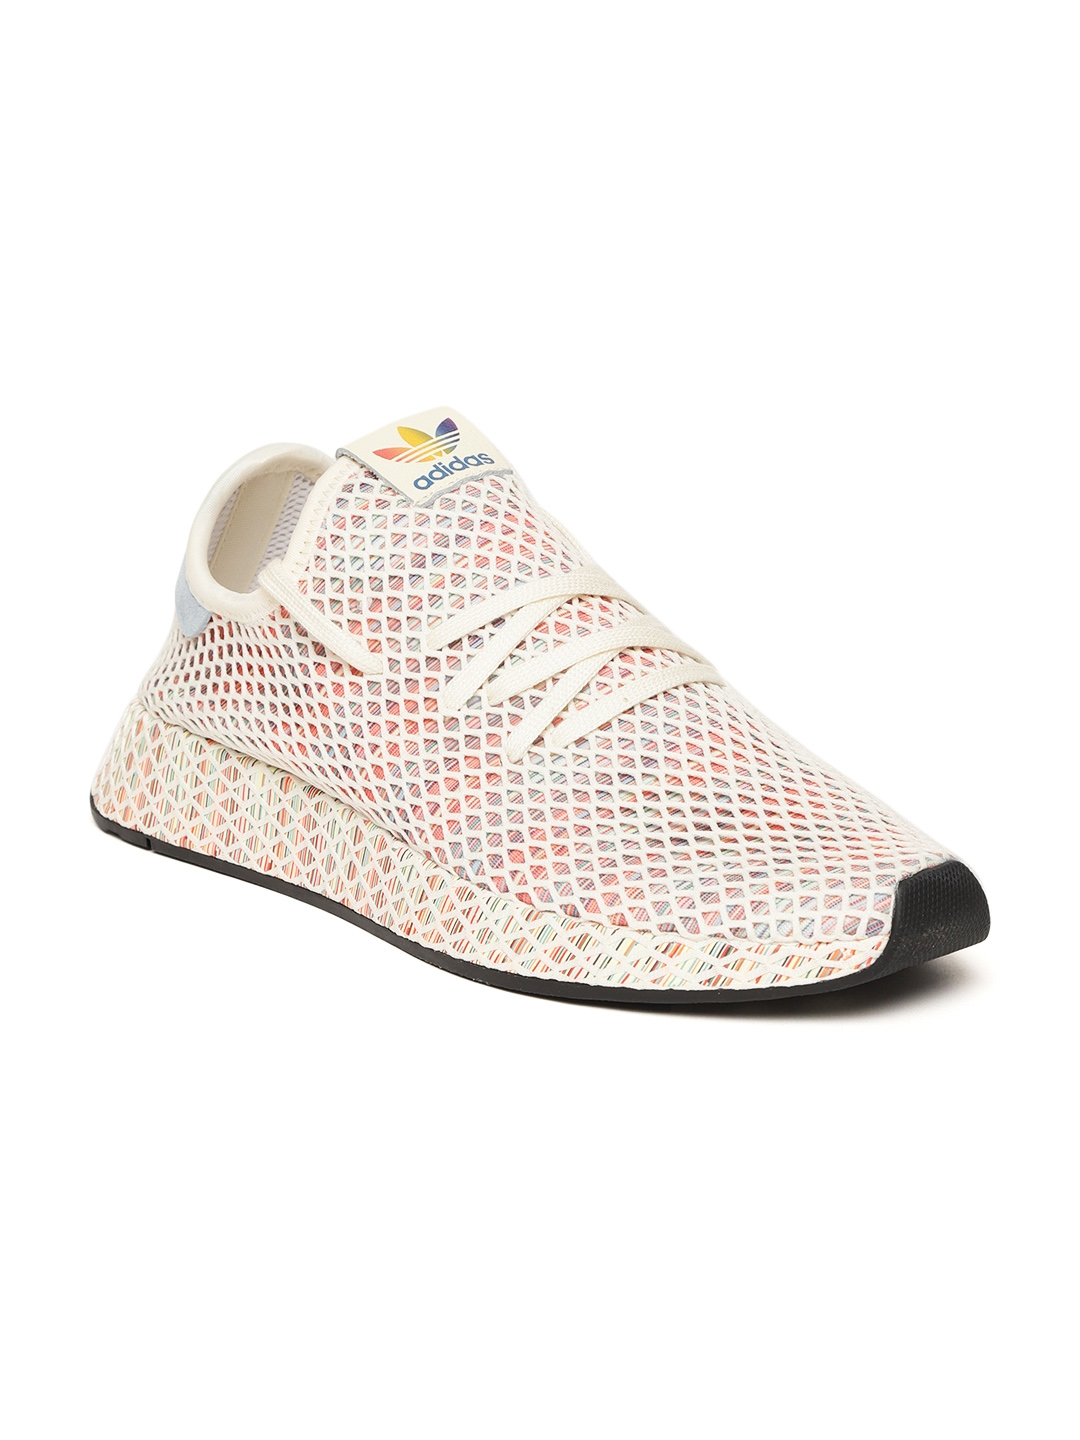 0ba60835fa82e Adidas Originals Men Cream   Peach-Coloured Deerupt Pride Sneakers